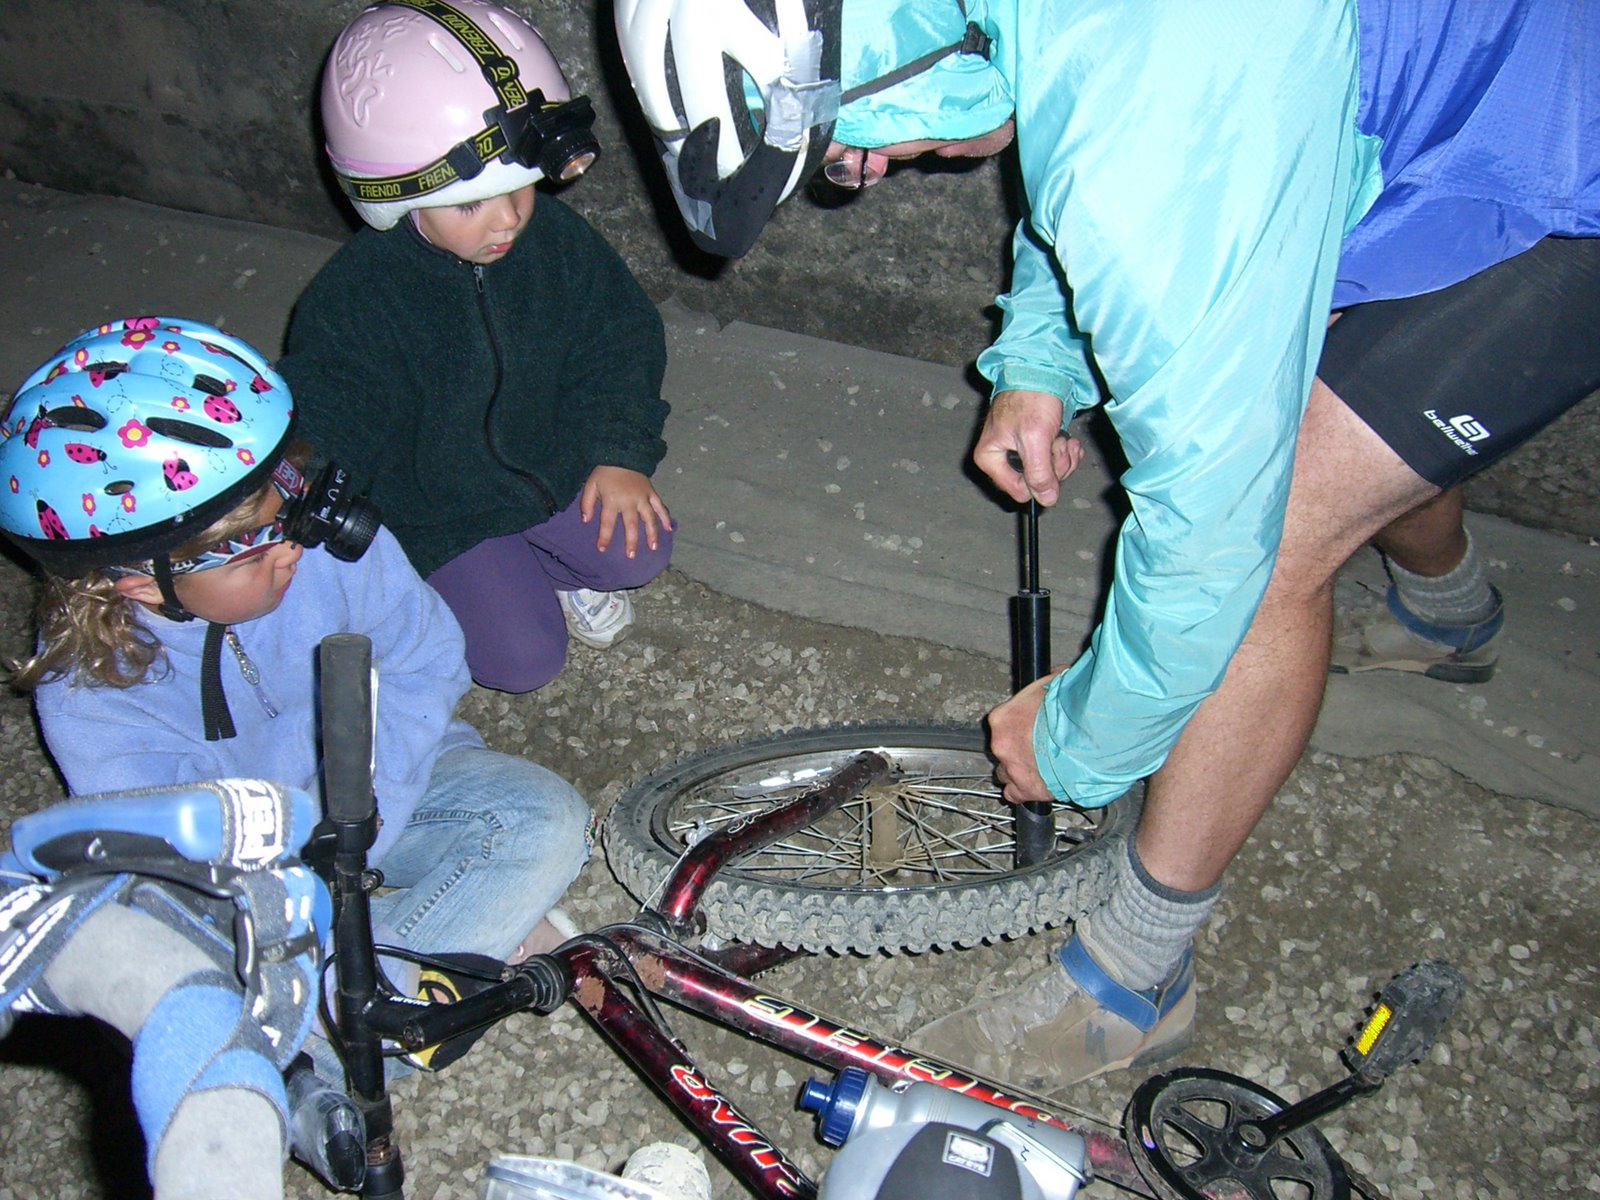 Daddy pumping up Katie's flat tire as Talia watches, Snoqualmie Tunnel, Iron Horse Trail, WA, Sunday 20 August 2006. Foto by Kristina Katayama Bass.